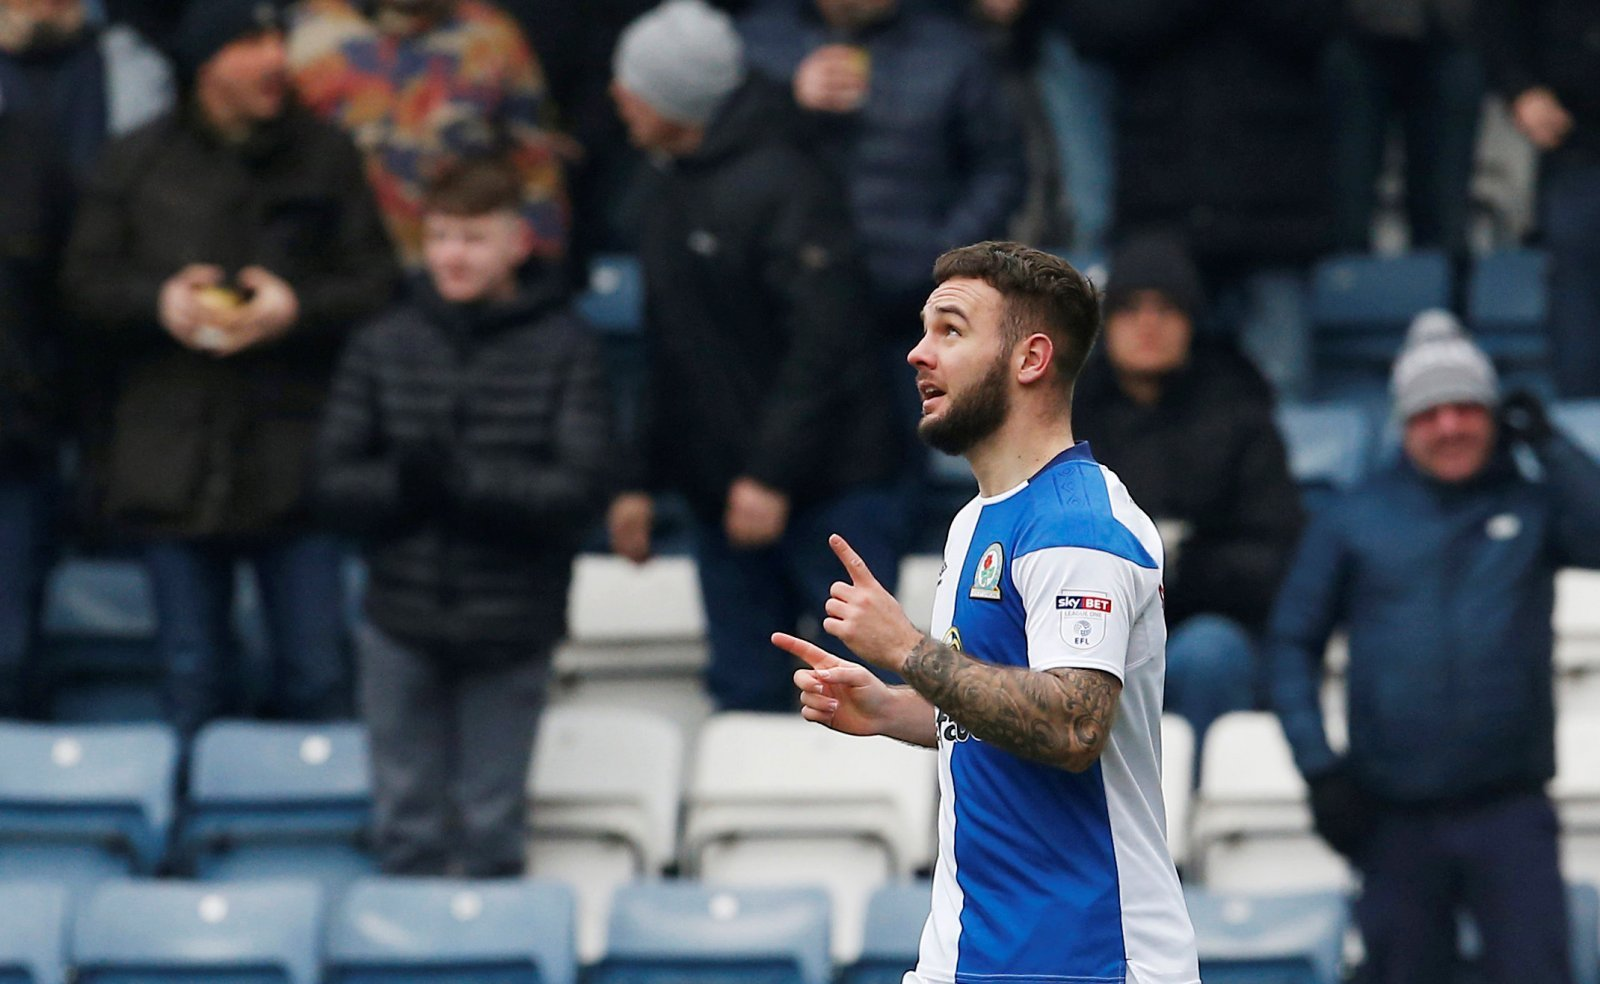 Leeds need Adam Armstrong to complete their attack